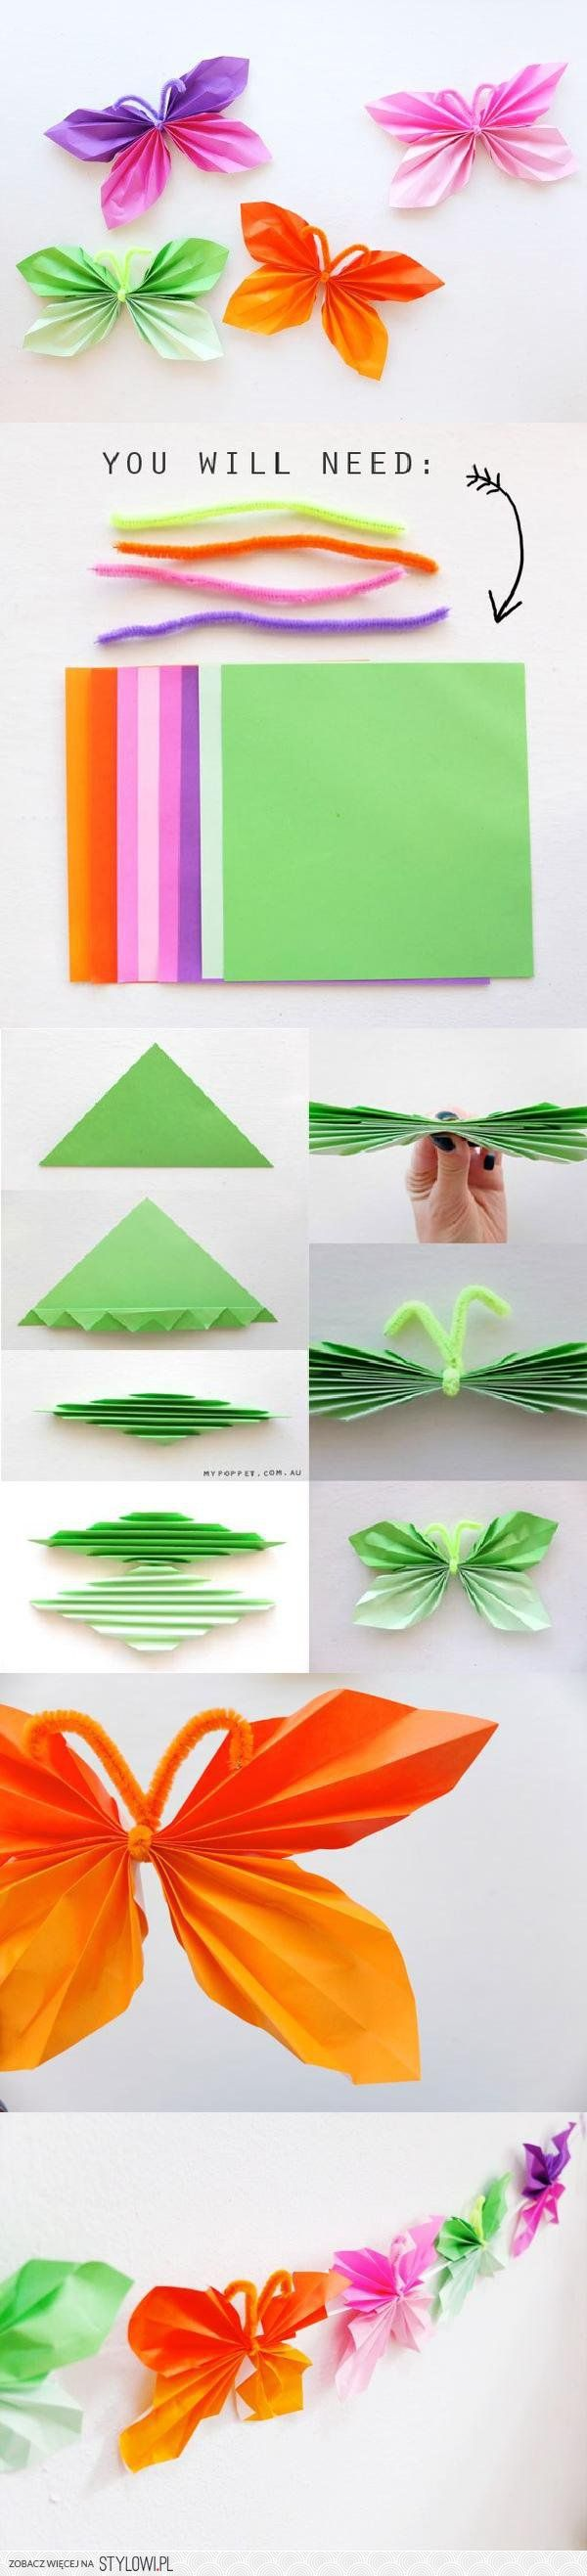 DIY Folded Paper Butterfly DIY Projects | UsefulDIY.com